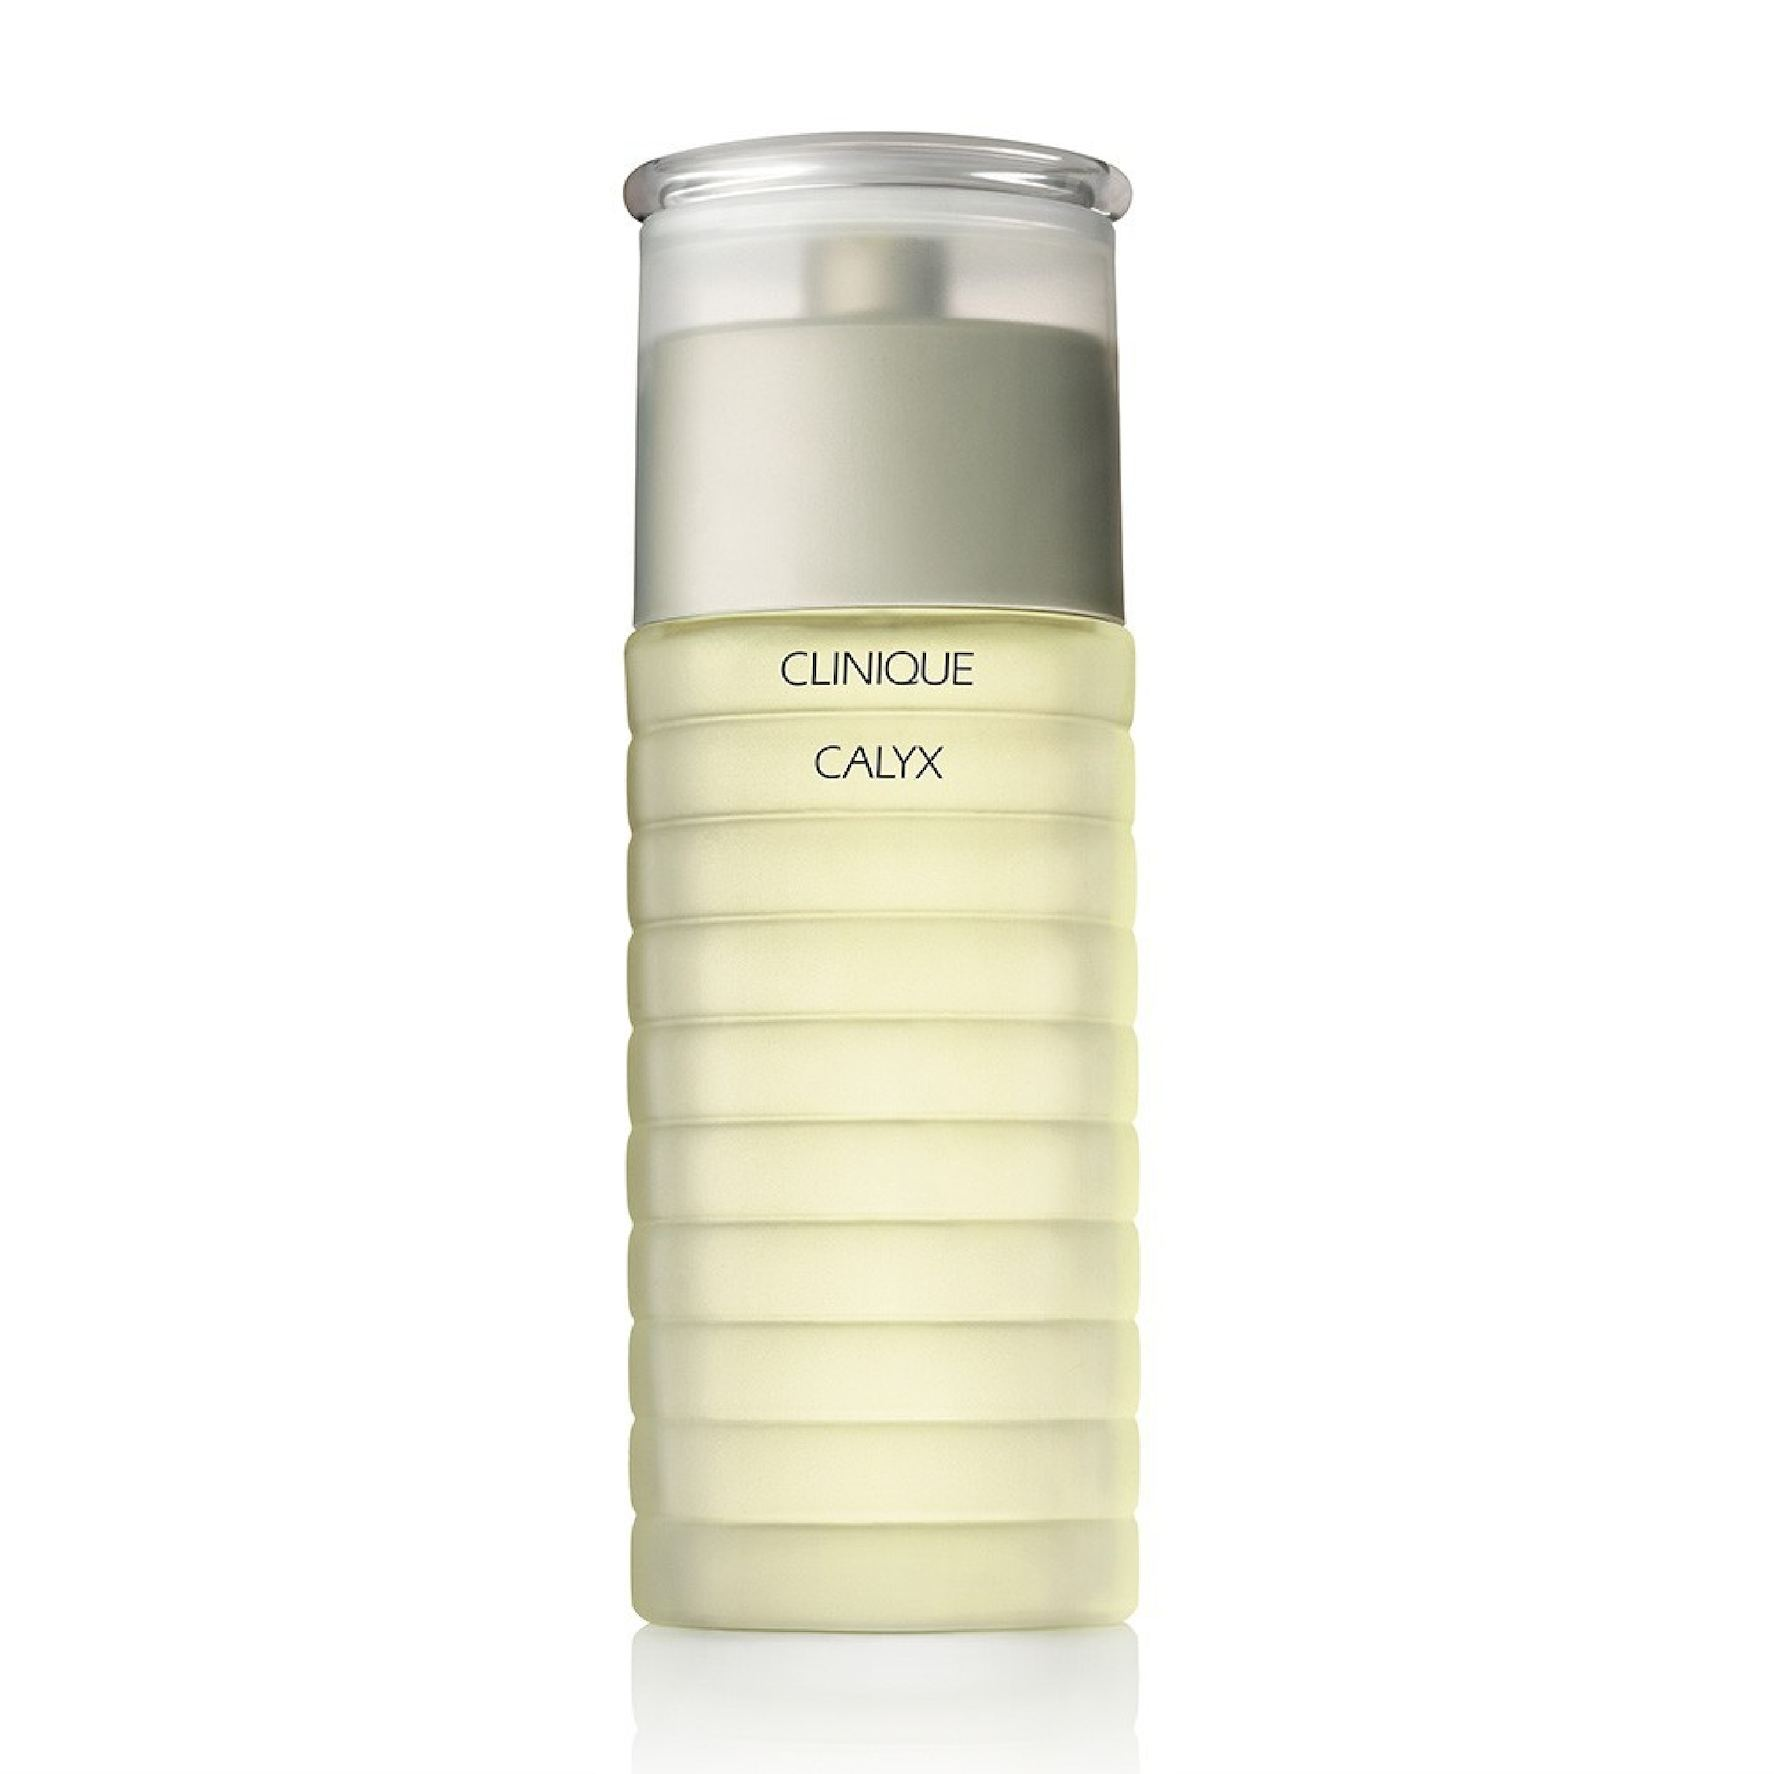 Парфюмерная вода Clinique Calyx 100ml фото